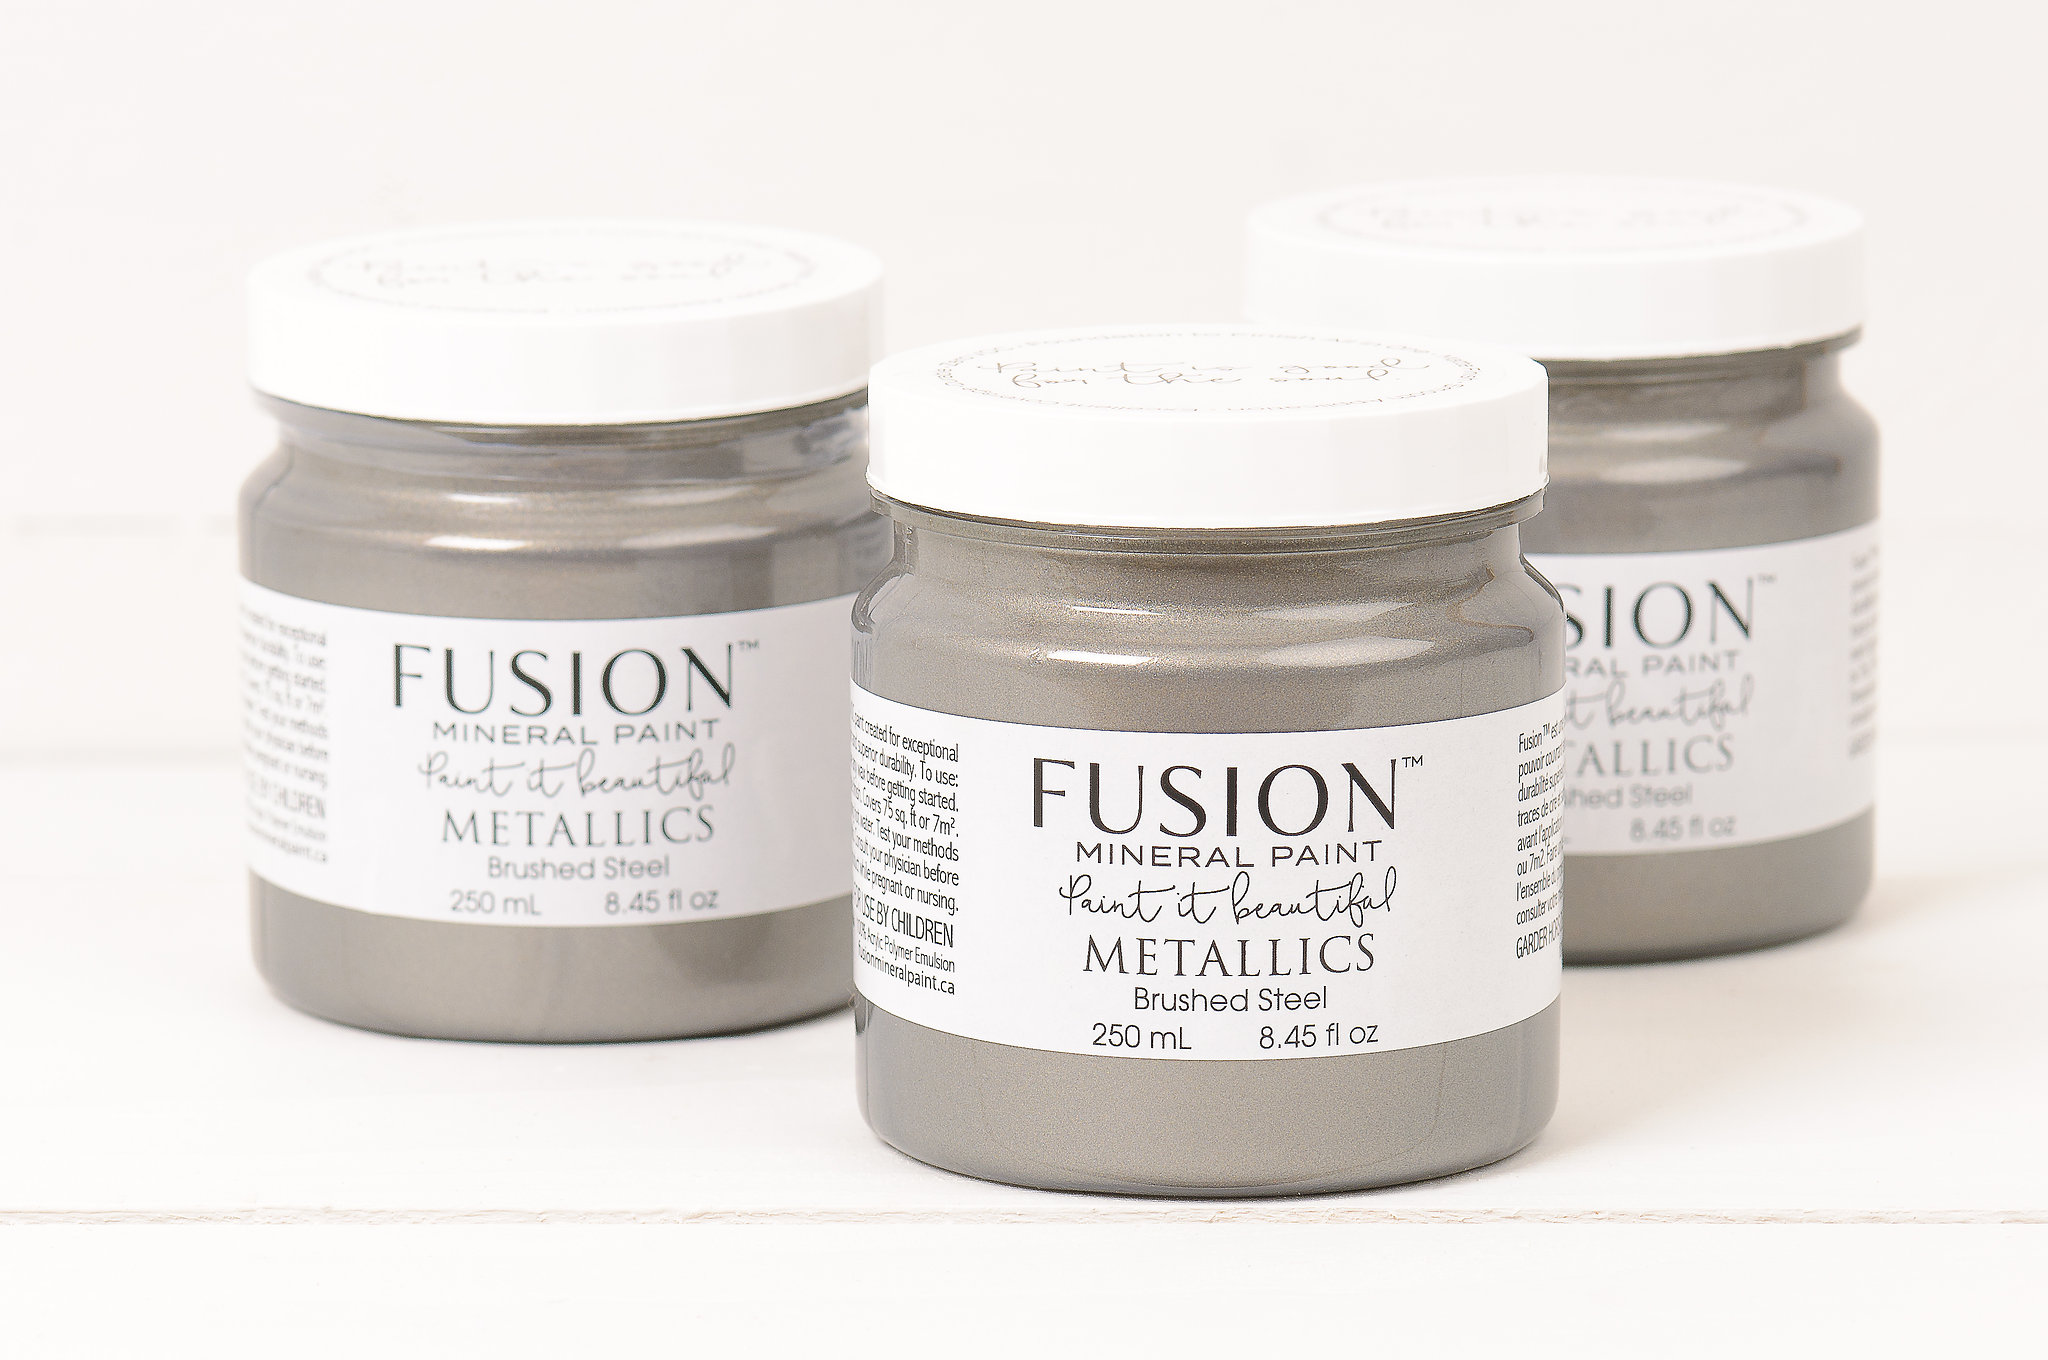 Fusion™ Metallics Brushed Steel